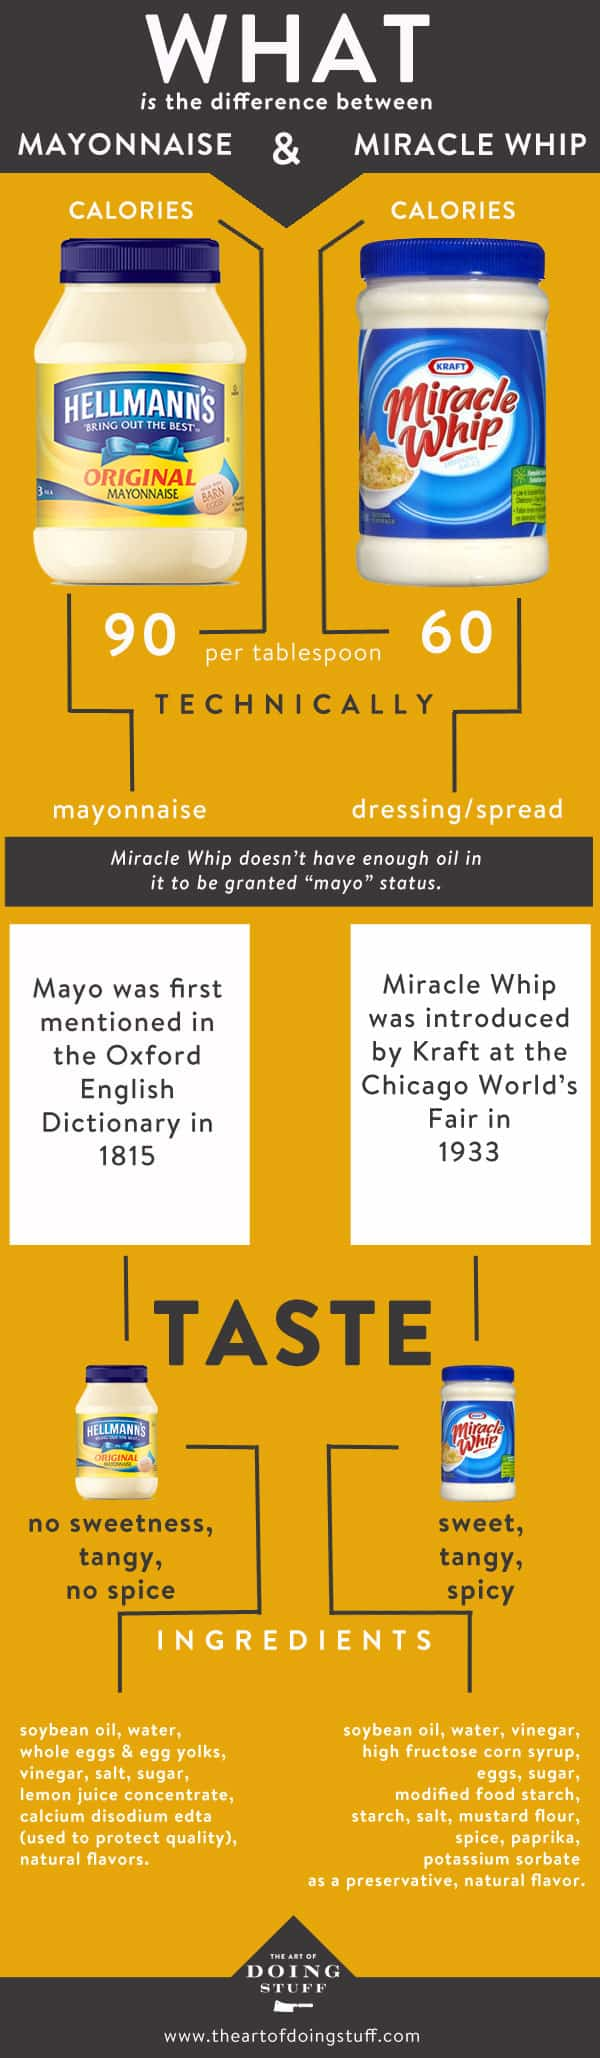 What is the difference between Mayonnaise and Miracle Whip?